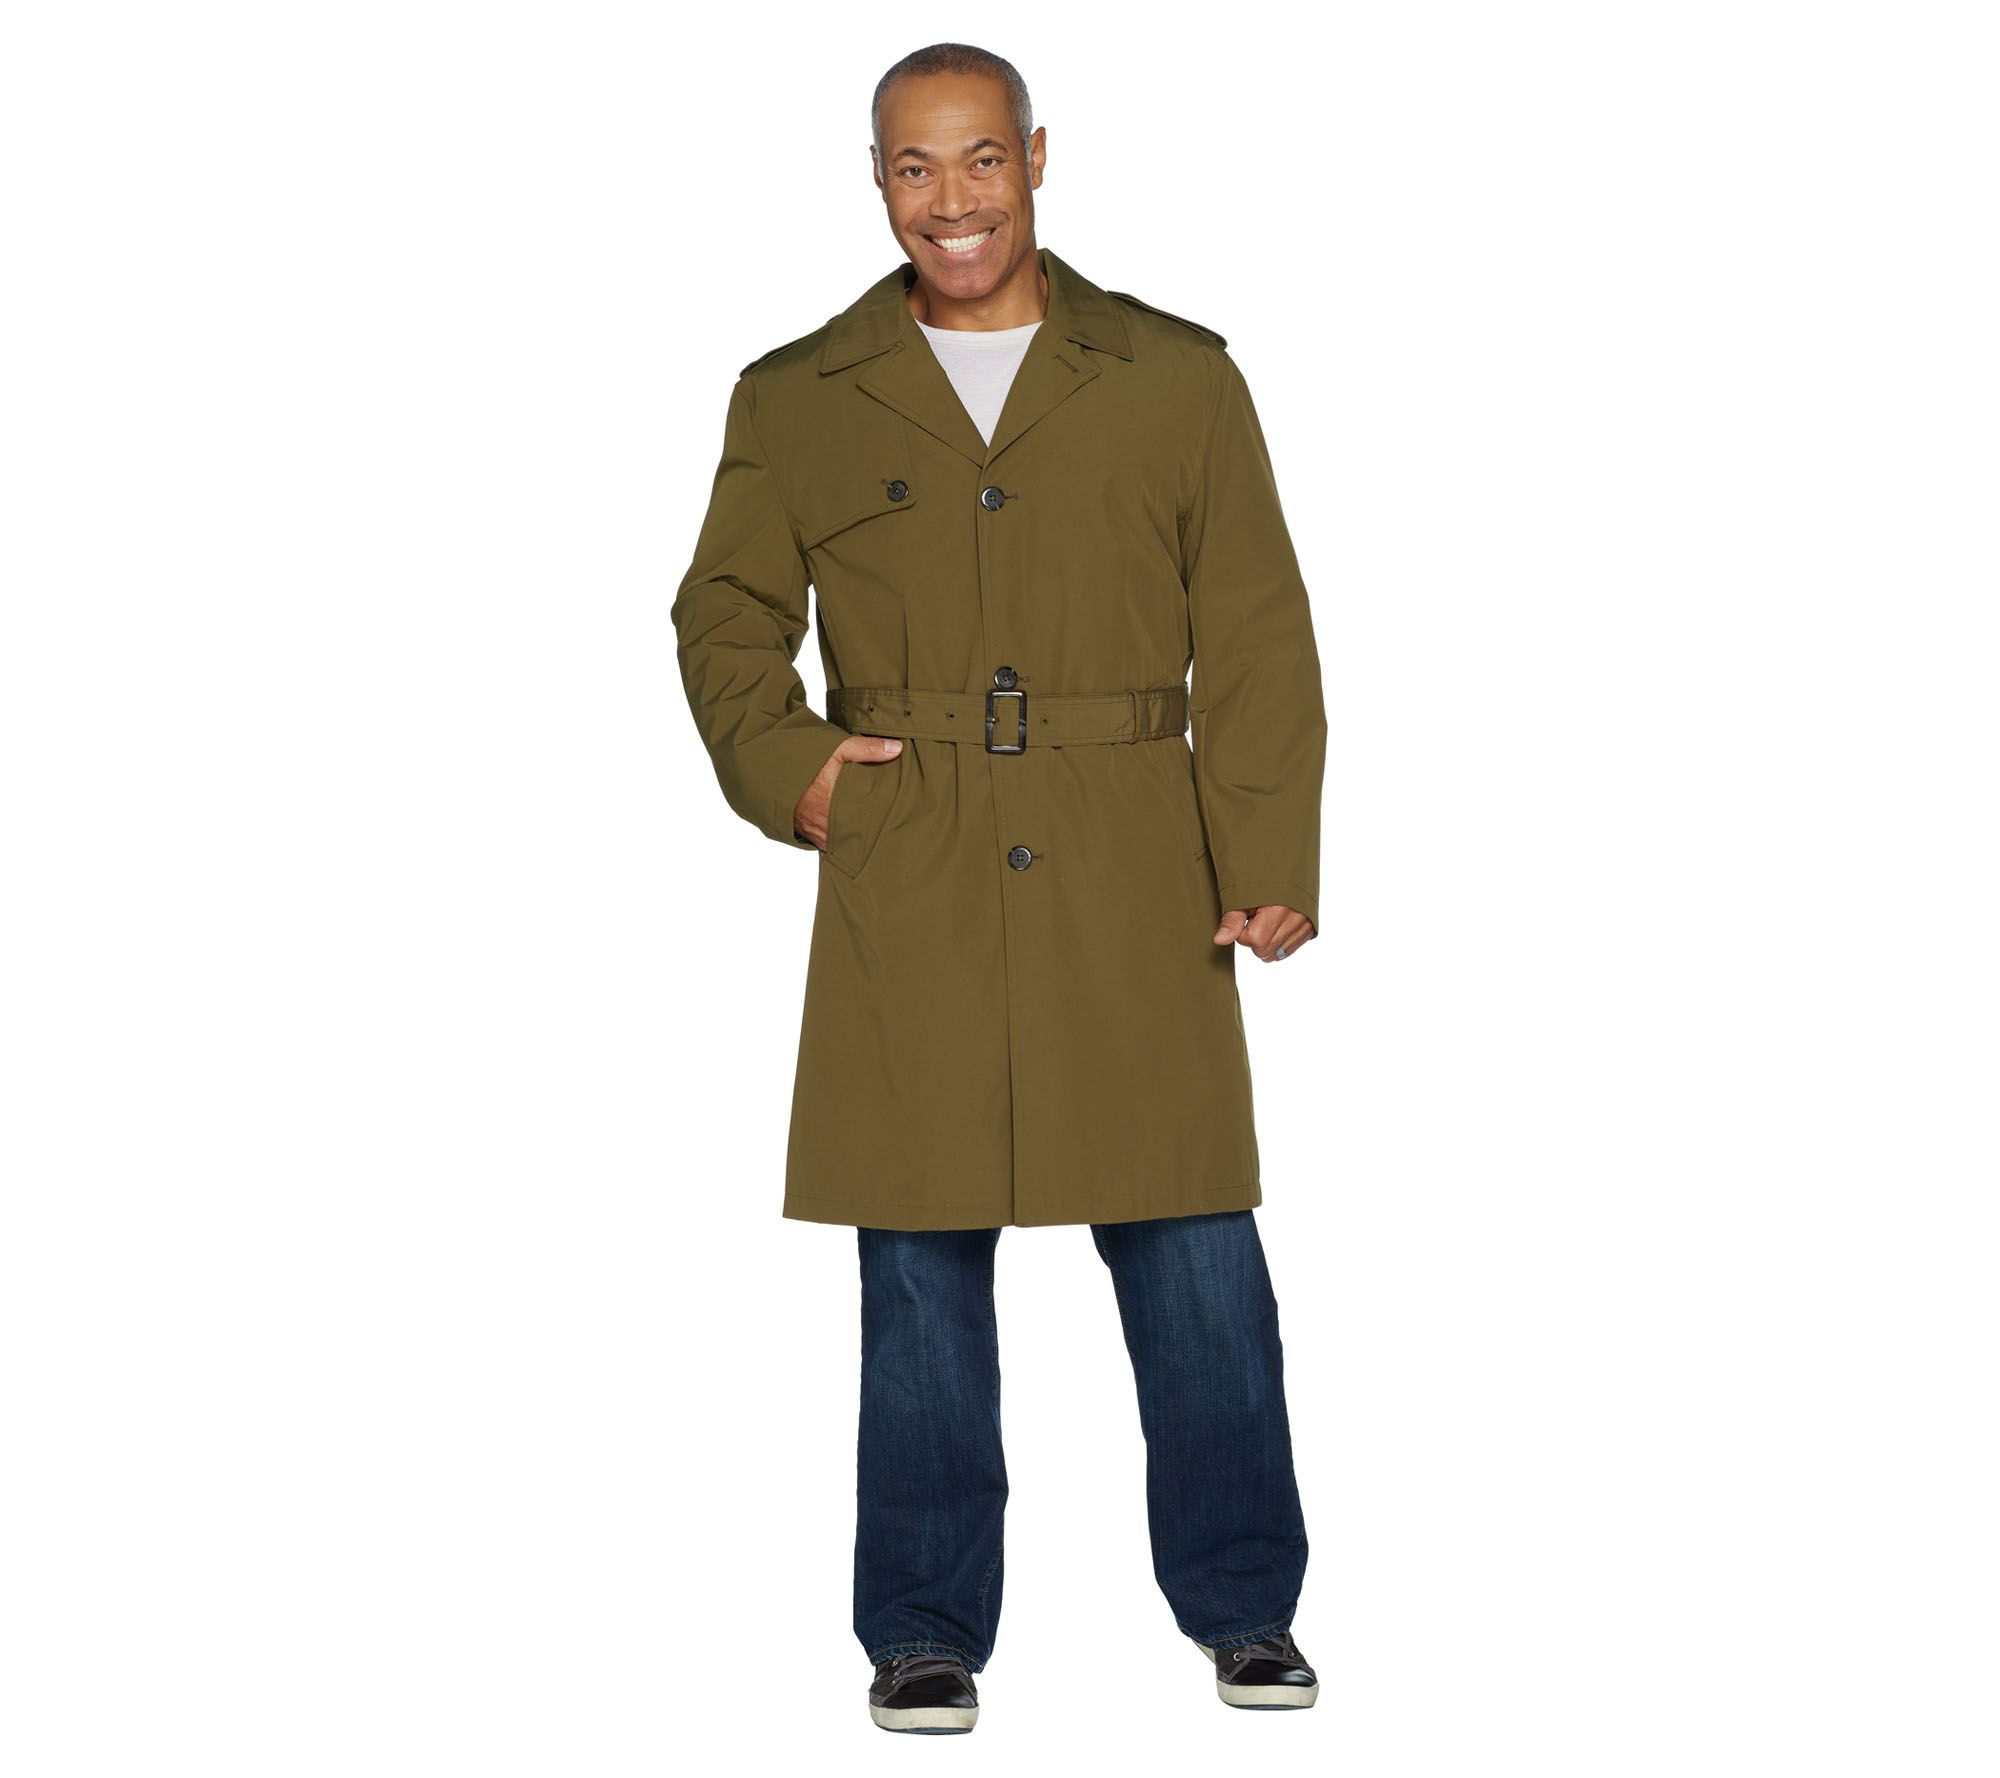 b605cf28833 London Fog Men s Water Resistant Trench Coat — QVC.com